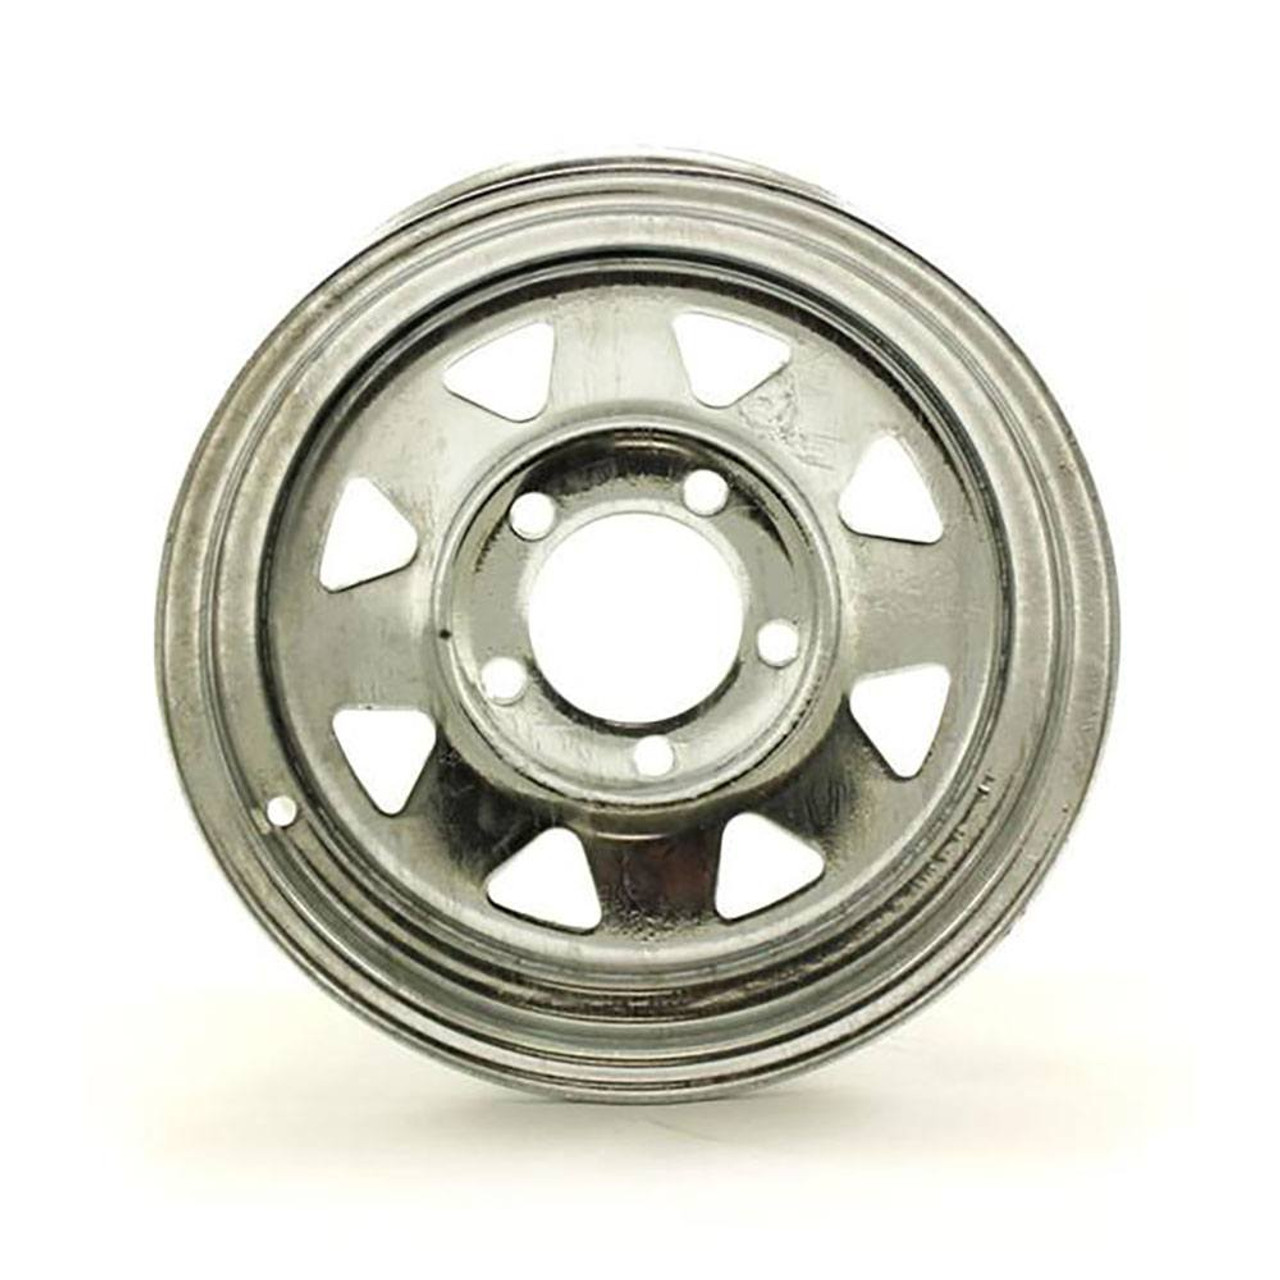 "13X4.5 5-Lug on 4.5"" Galvanized Spoke Trailer Wheel"